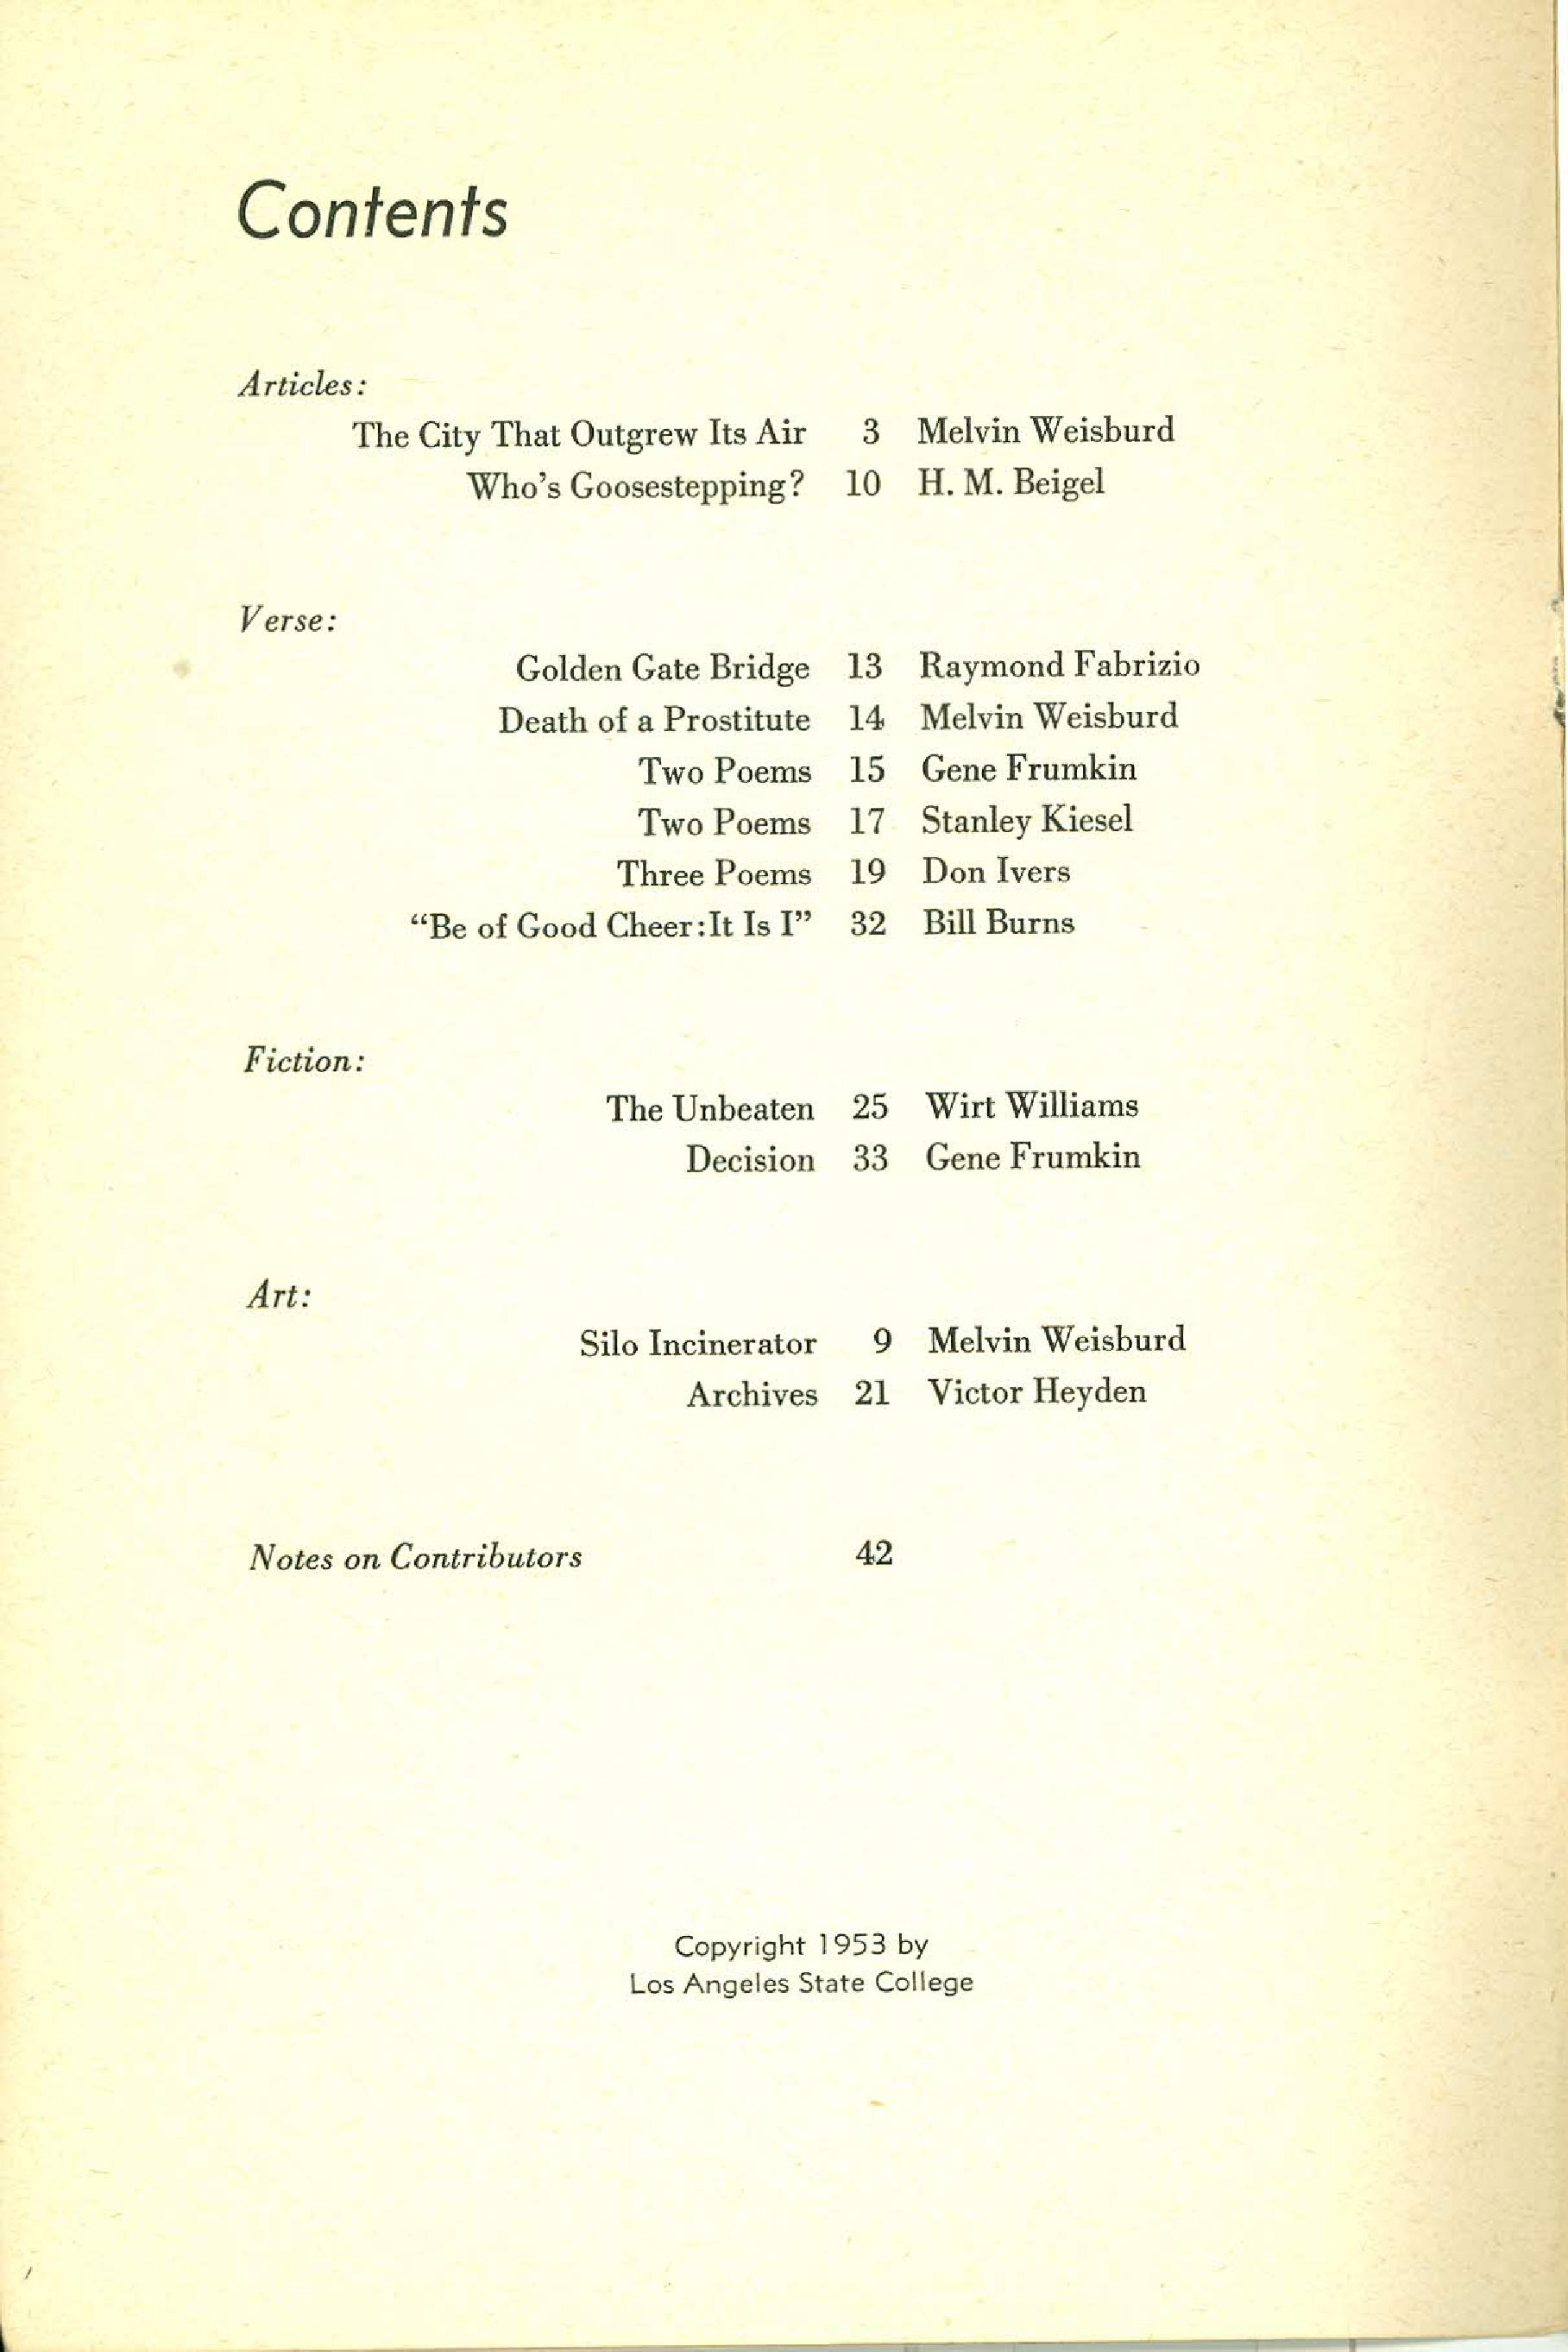 Statement Magazine Fall 1953 Table of Contents